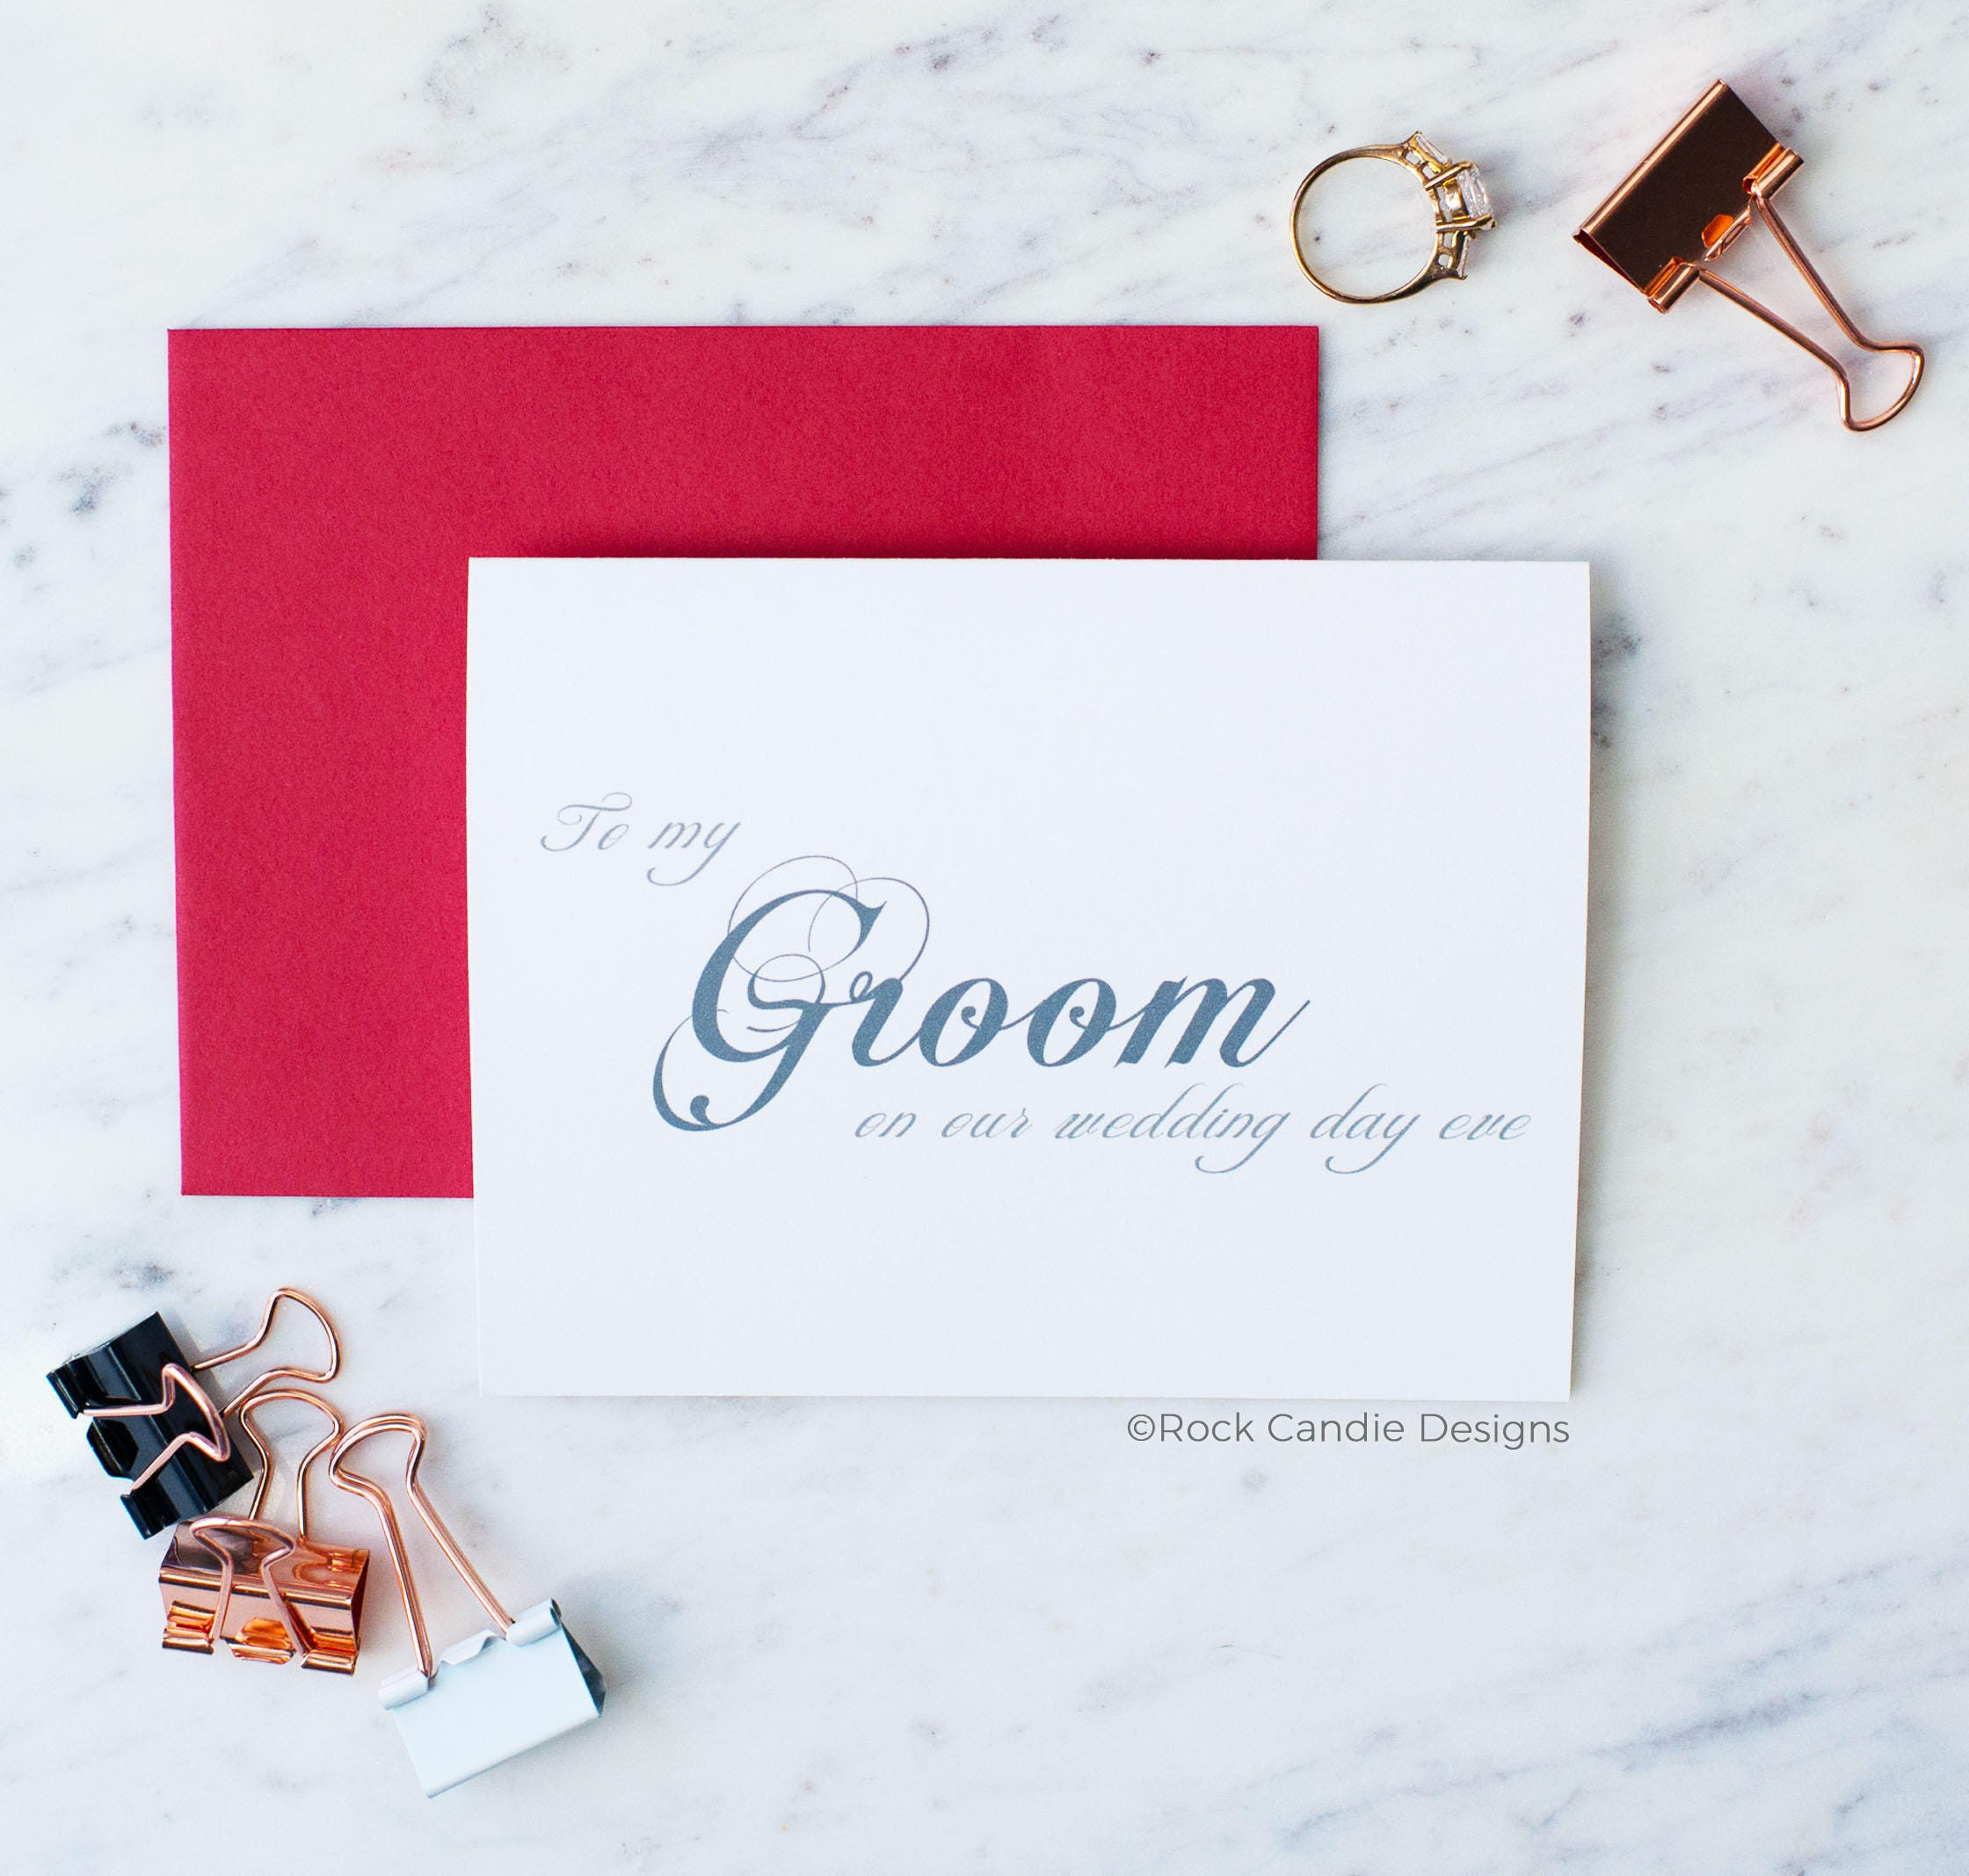 To My Groom On Our Wedding Day Eve Card | Sweet Card To Give To Your ...